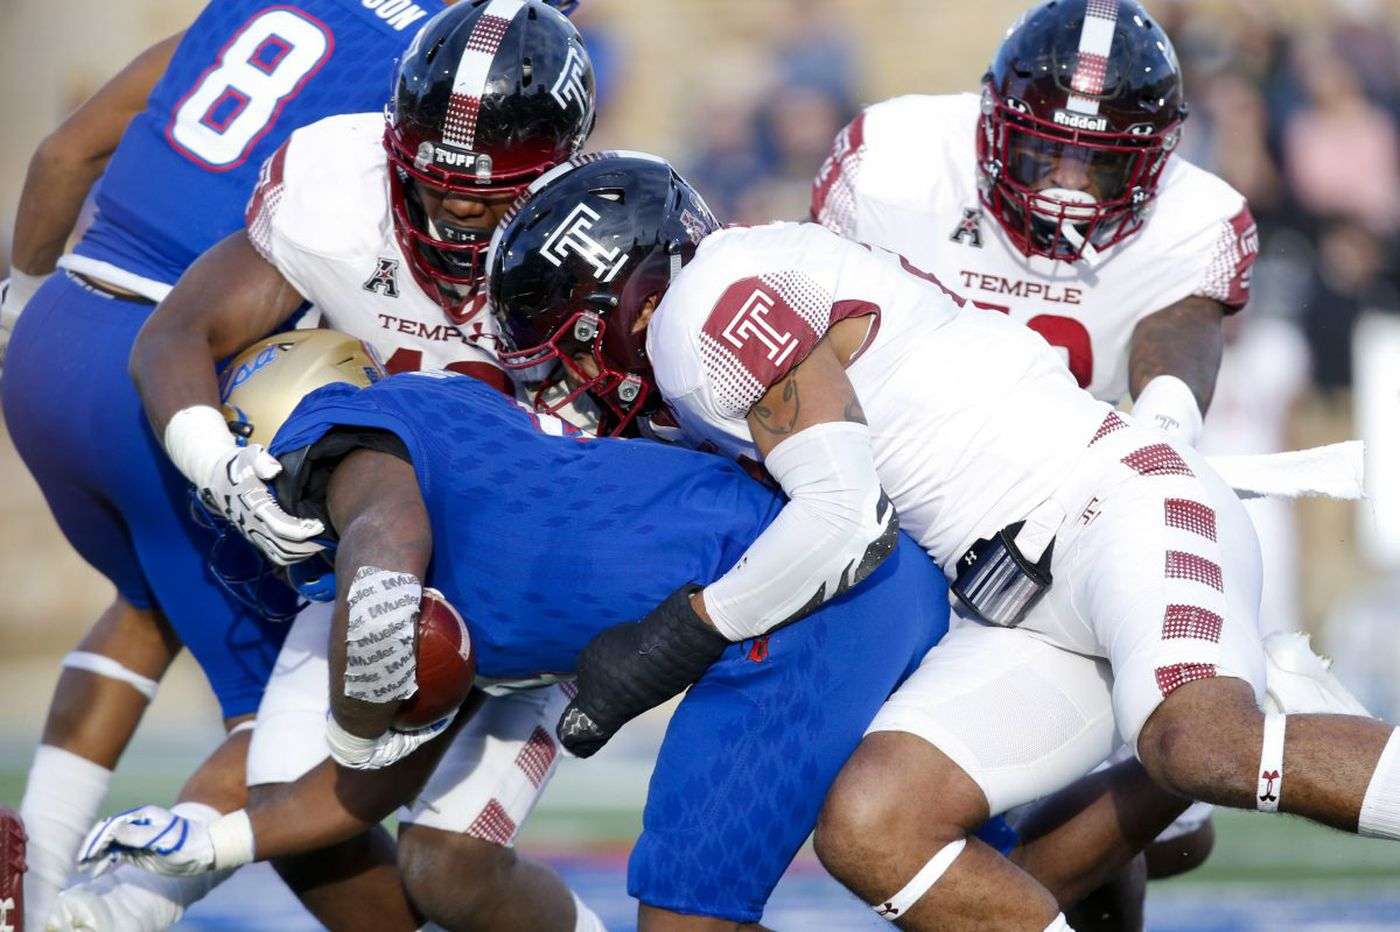 Temple is bowl eligible after win over Tulsa